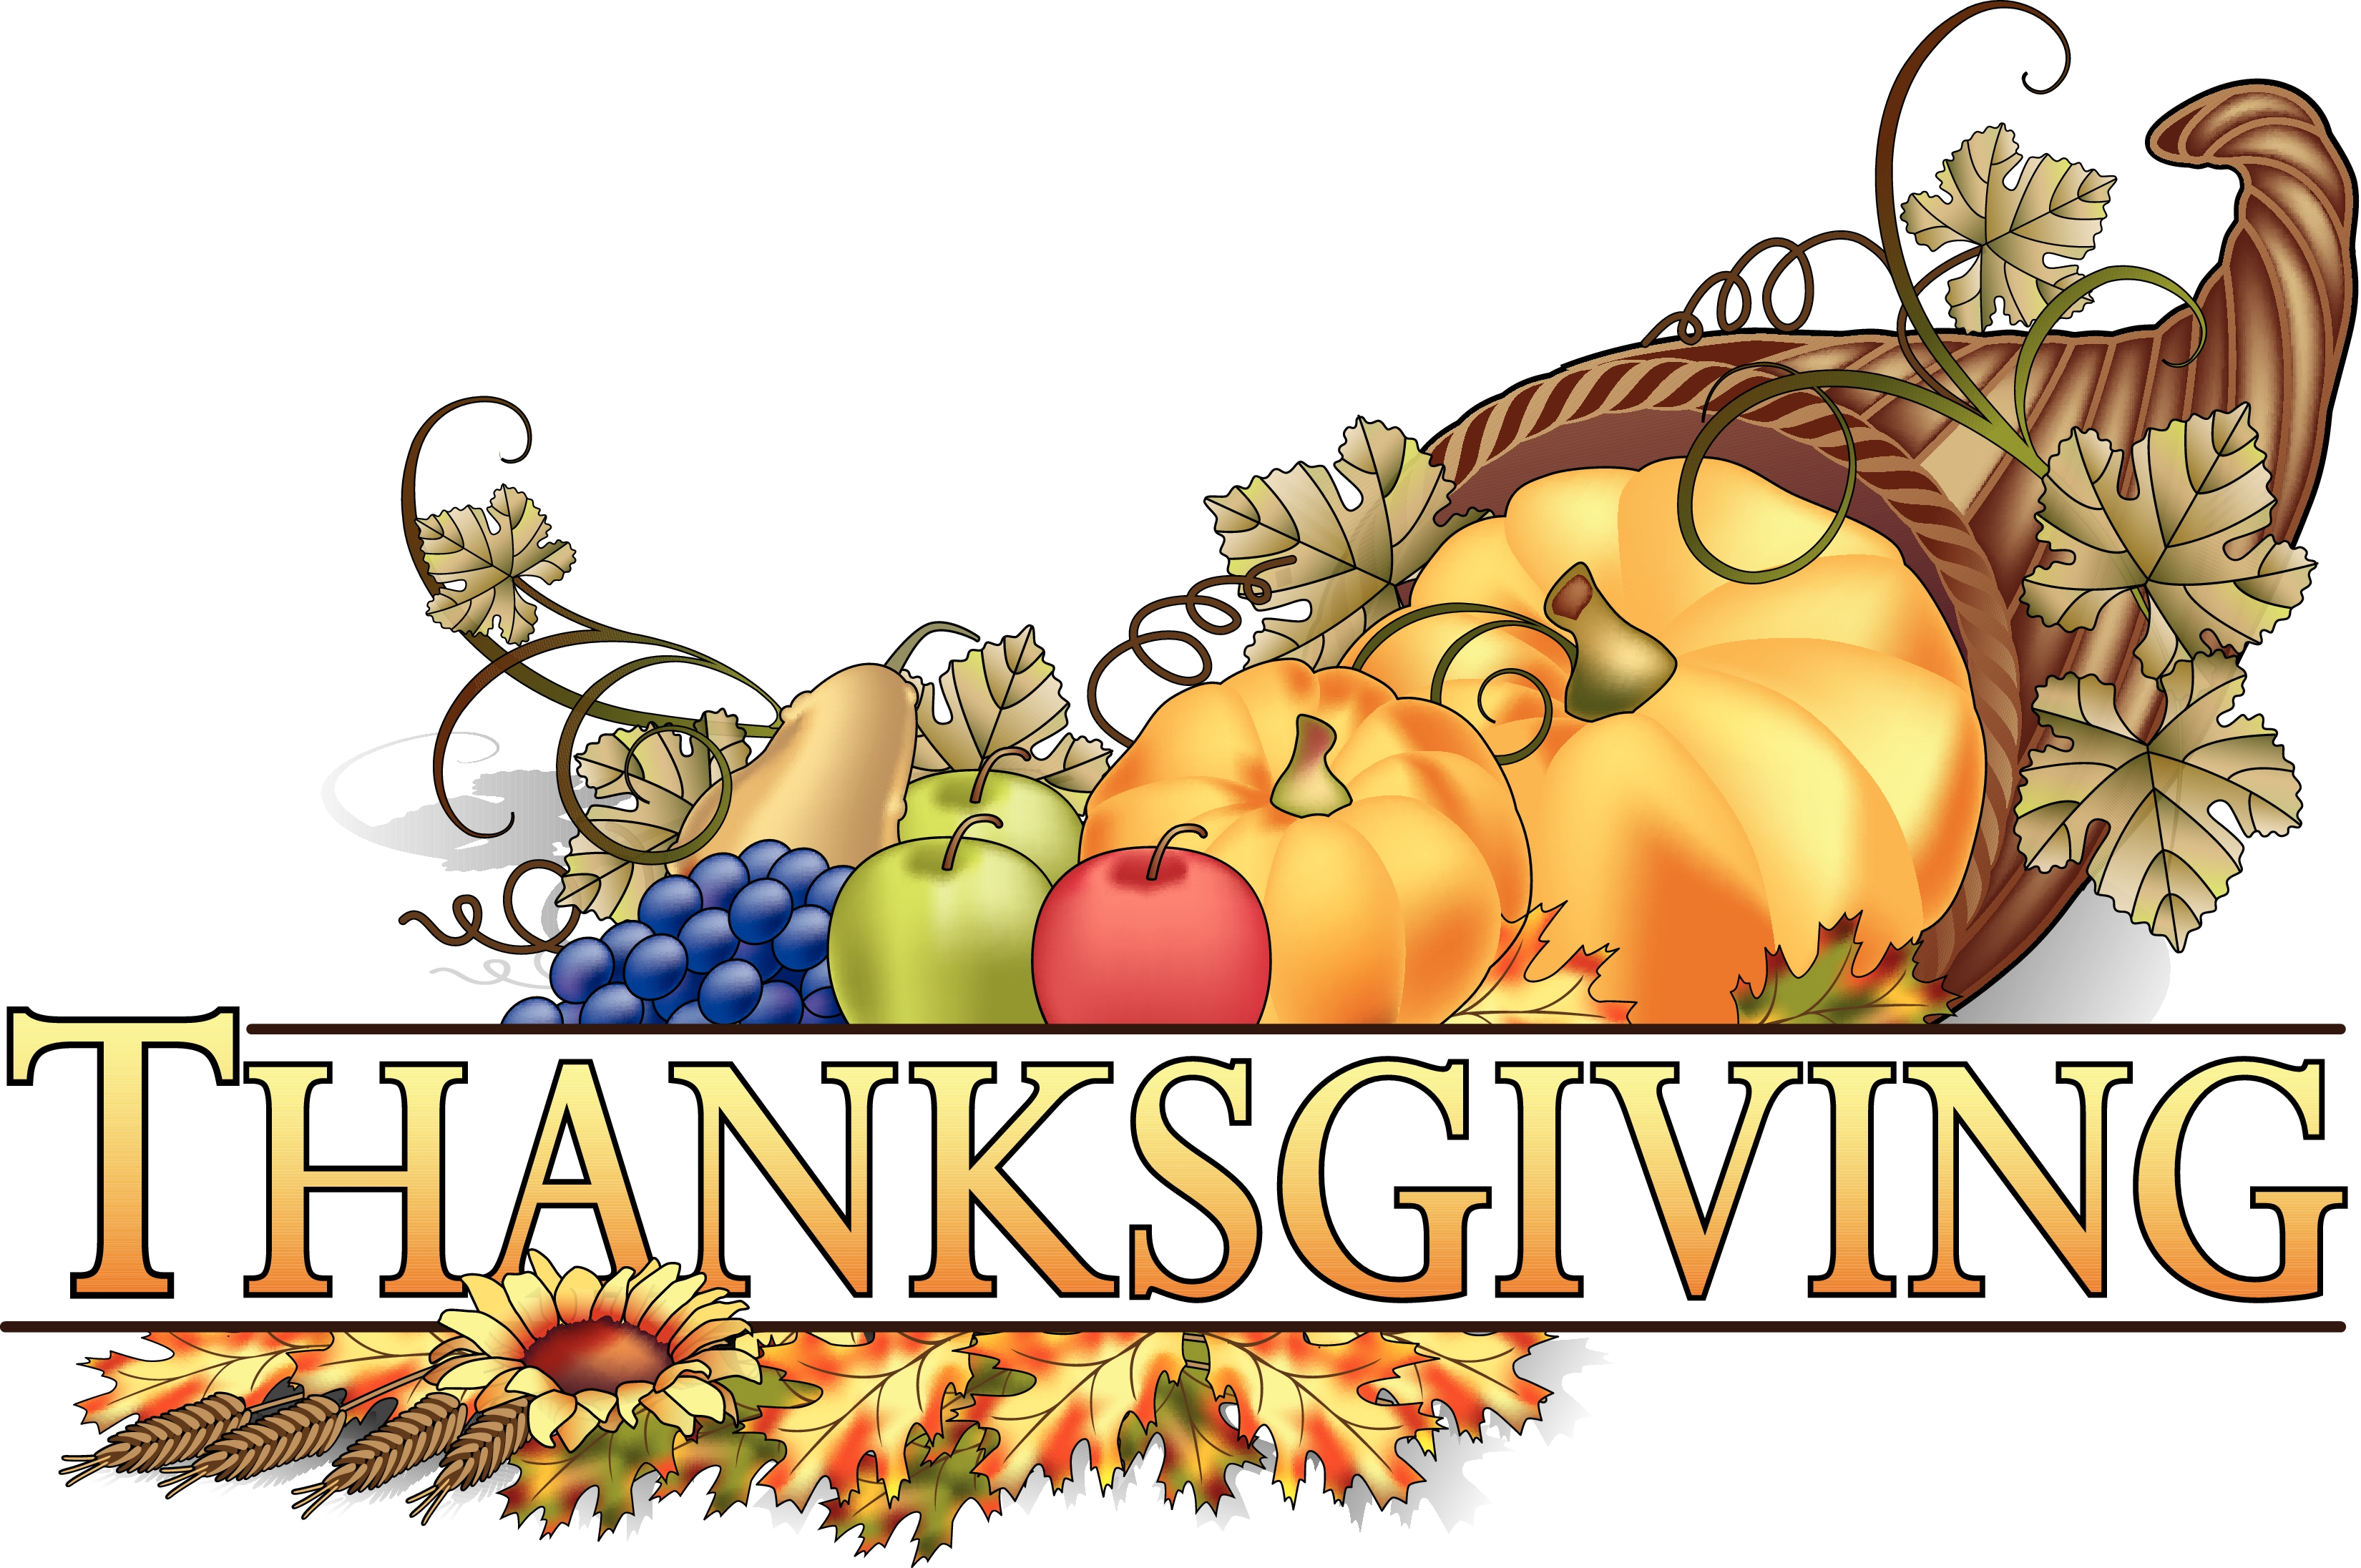 Thanksgiving Was Not Even Associated Wit-Thanksgiving Was Not Even Associated With Our National Thanksgiving-15